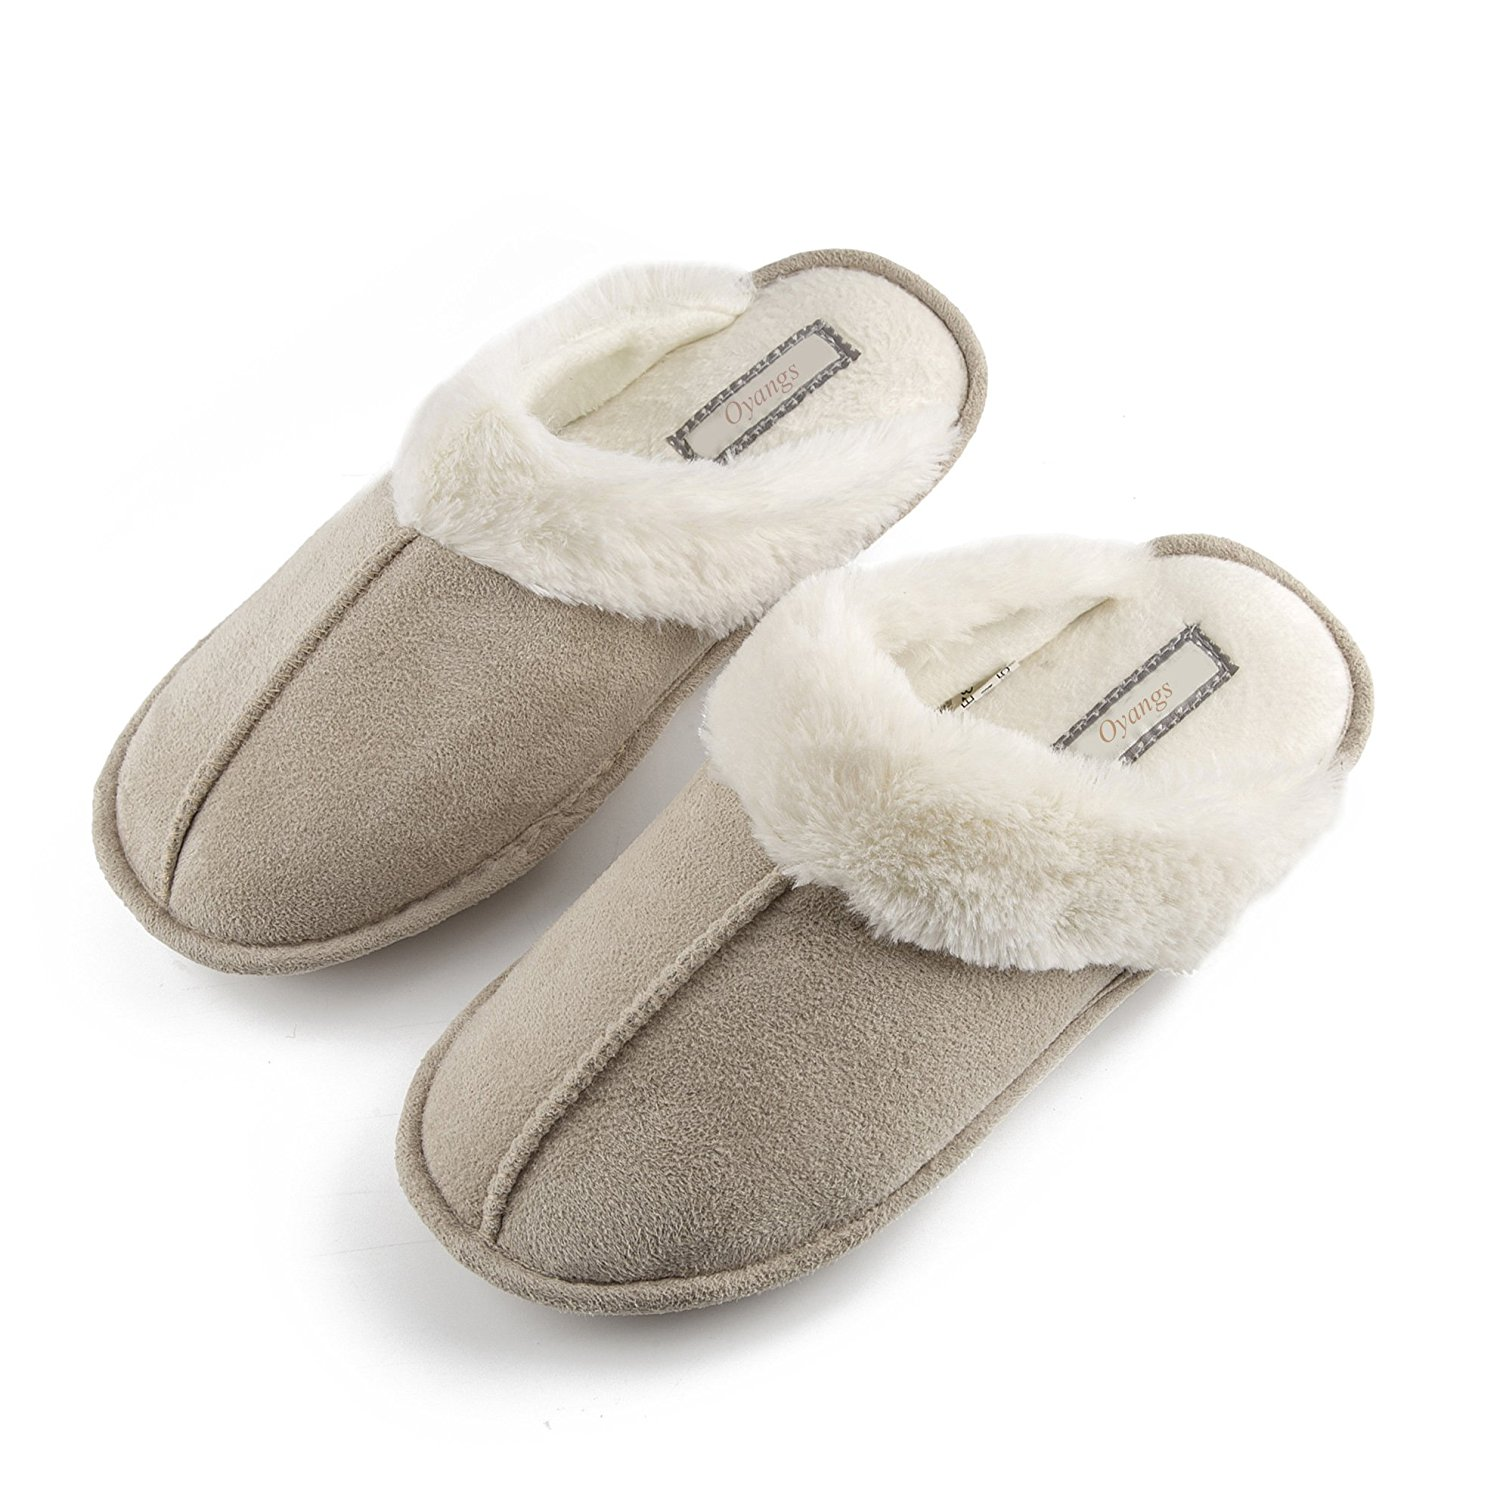 Oyangs Women's Slippers, Slipper For Women Ladies Slippers Indoor Slippers,Bedroom Slippers Slipper Ladies Memory Foam Slippers Size 7 8 9 Grey Cotton Fuzzy Fluffy House Womans Warm Slippers S170